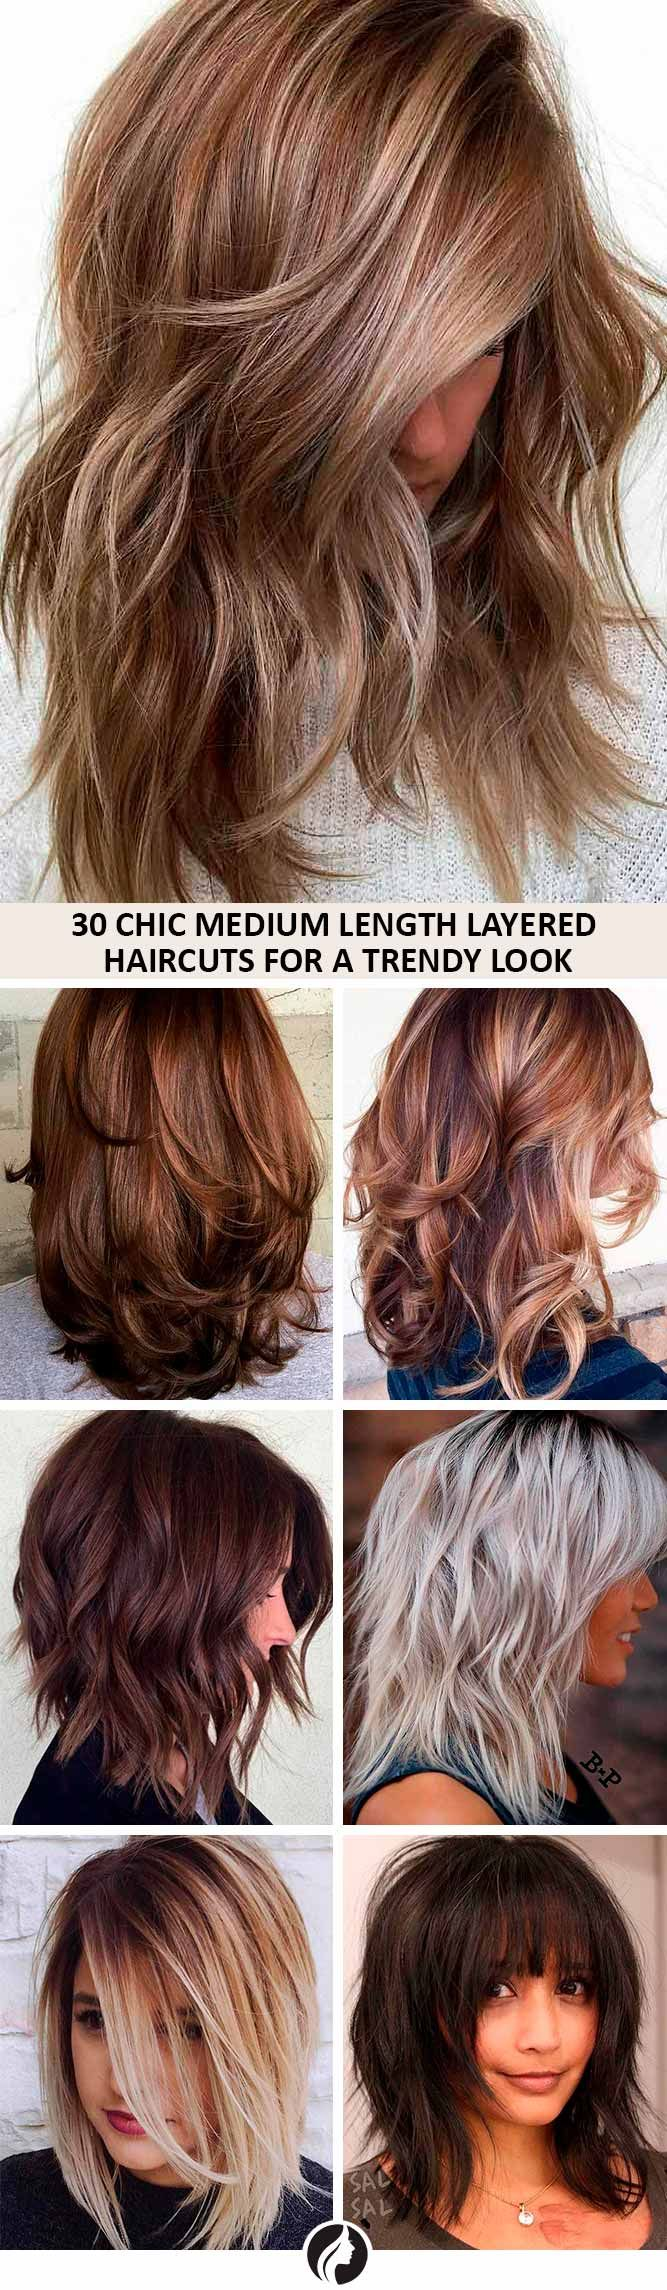 best 25+ medium length layered hairstyles ideas only on pinterest